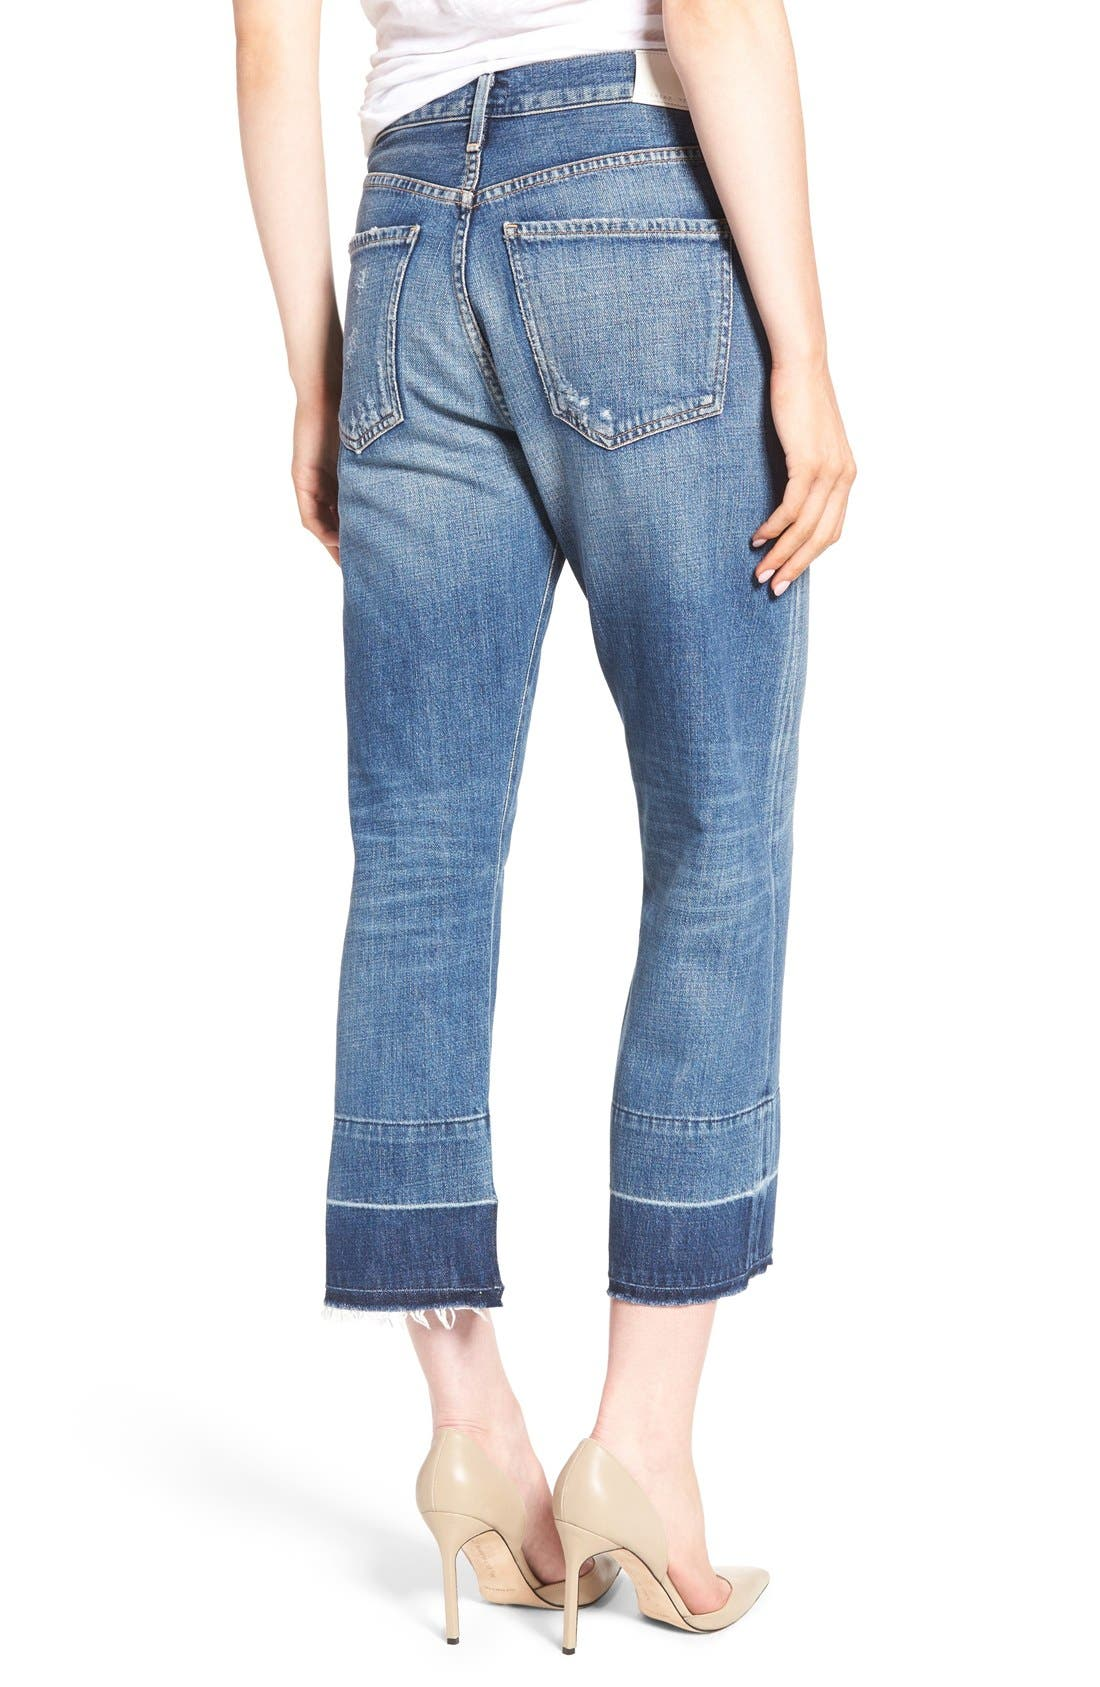 Alternate Image 2  - Citizens of Humanity Cora High Waist Released Hem Boyfriend Jeans (Fade Out)